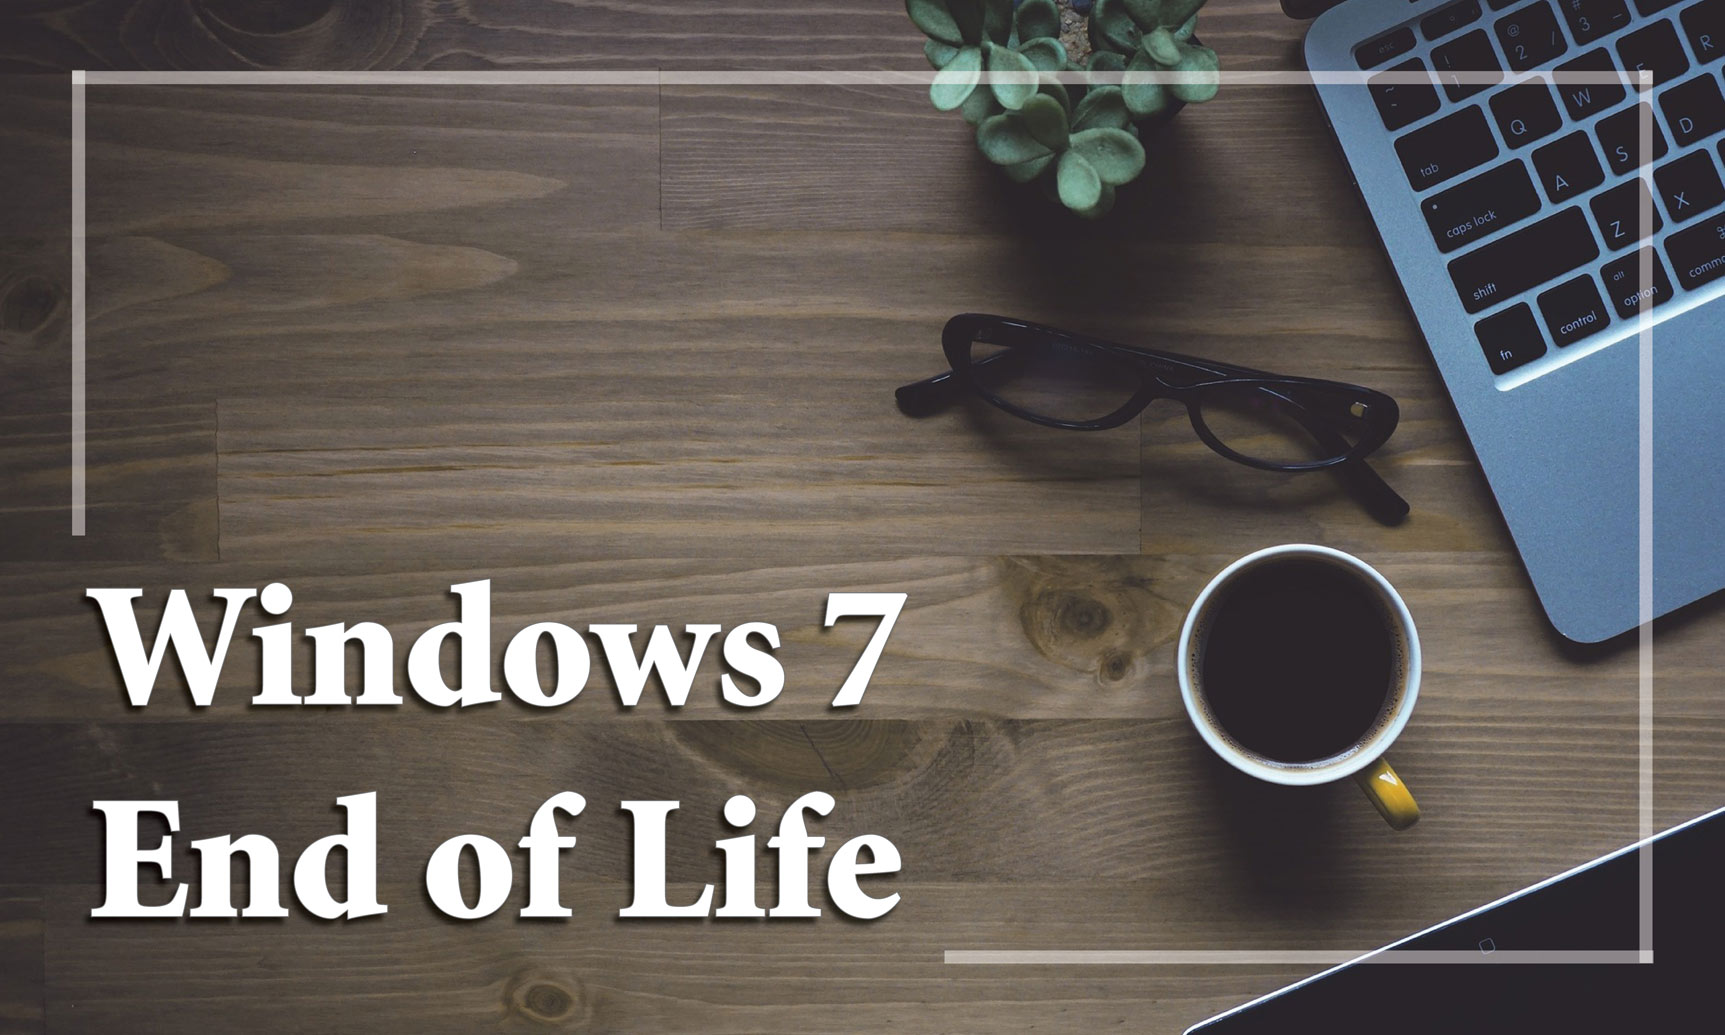 Microsoft Announces Windows 7 End of Life